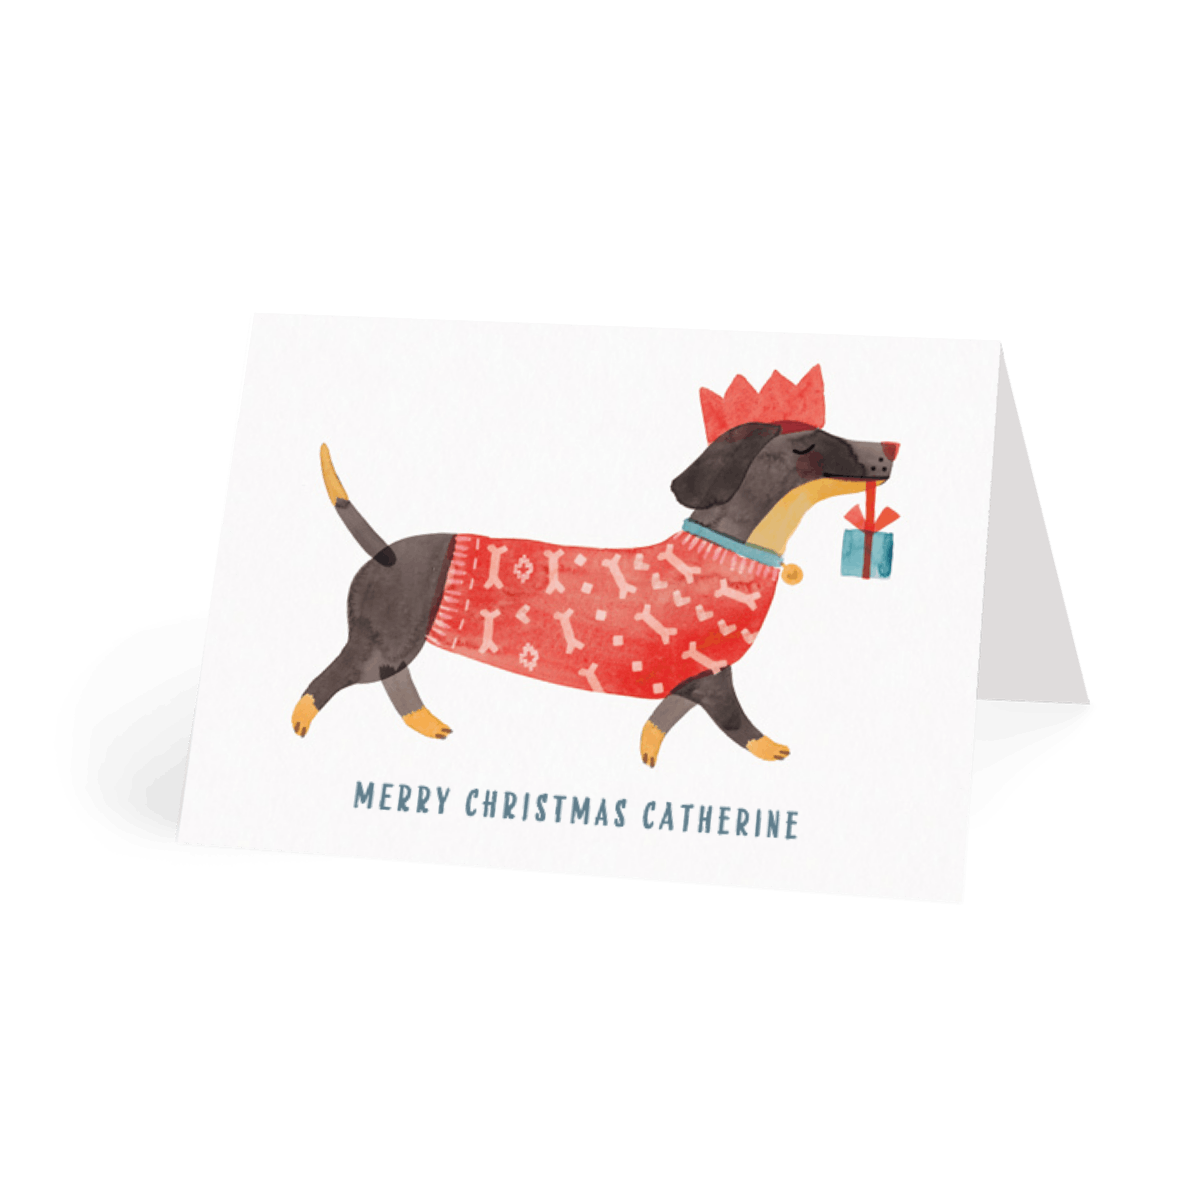 Https%3a%2f%2fwww.papier.com%2fproduct image%2f28846%2f14%2fchristmas dachshund 7240 front 1542379132.png?ixlib=rb 1.1